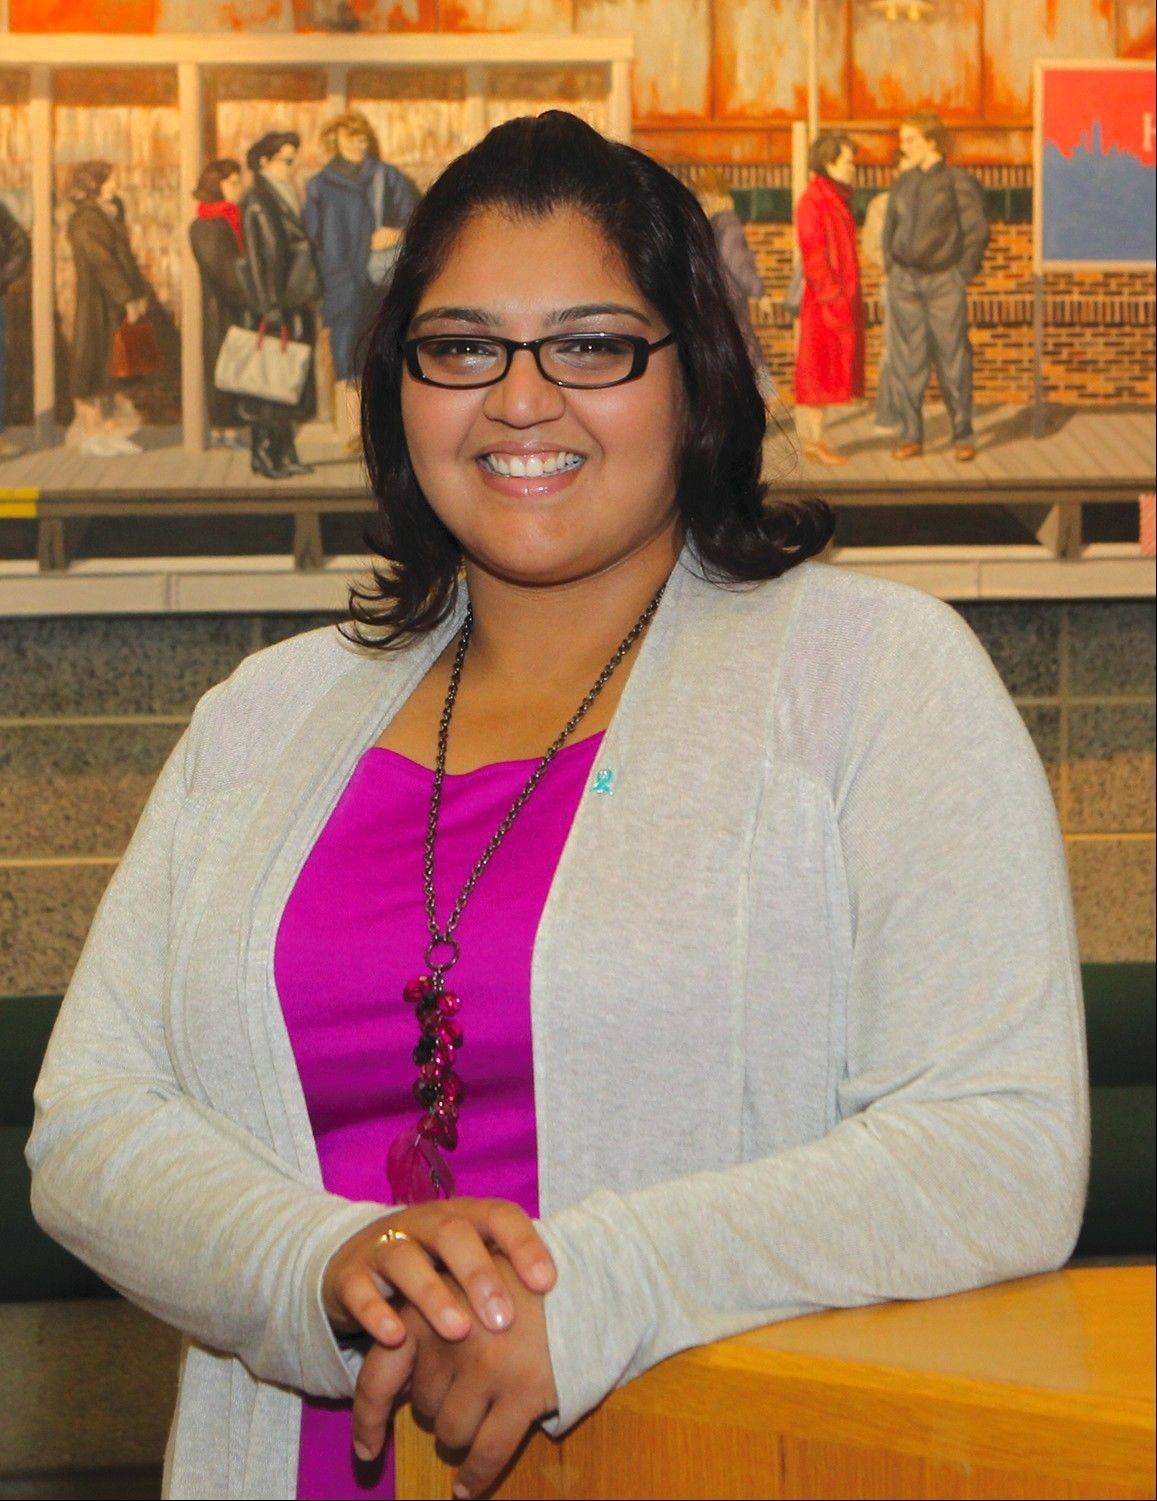 Karishma Brownlee, coordinator for Access, Equity and Student Rights at Oakton Community College